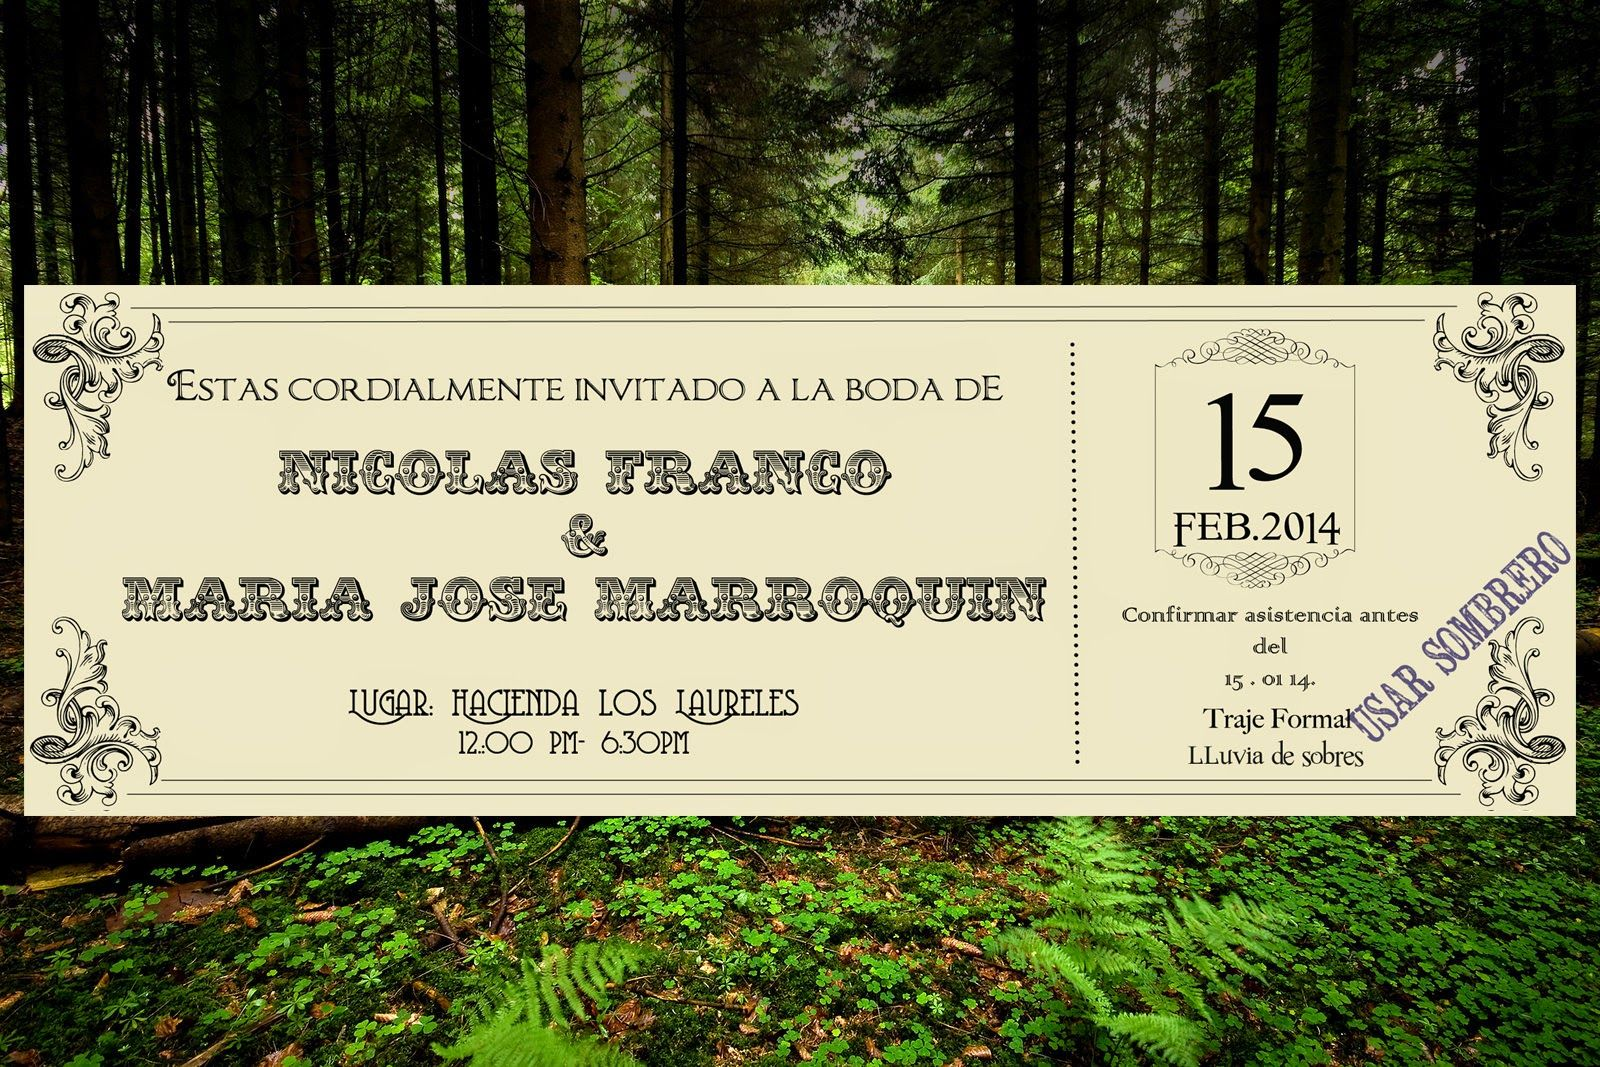 Casa Lefay: Una boda con encanto / A charming Wedding beautiful forest wedding by casa lefay matrimonios bodas invitations invitaciones